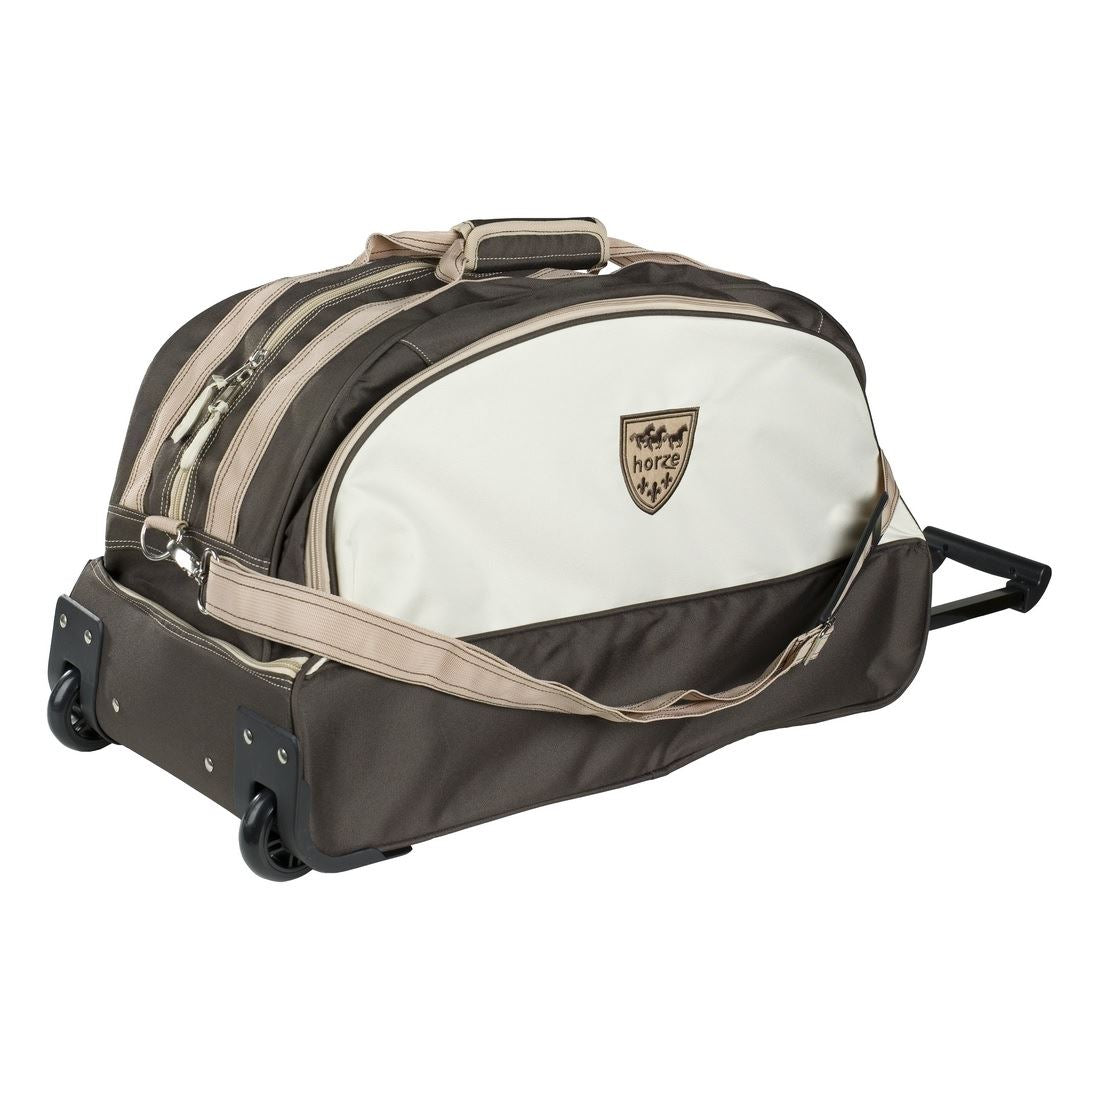 Horze Bag with Wheels